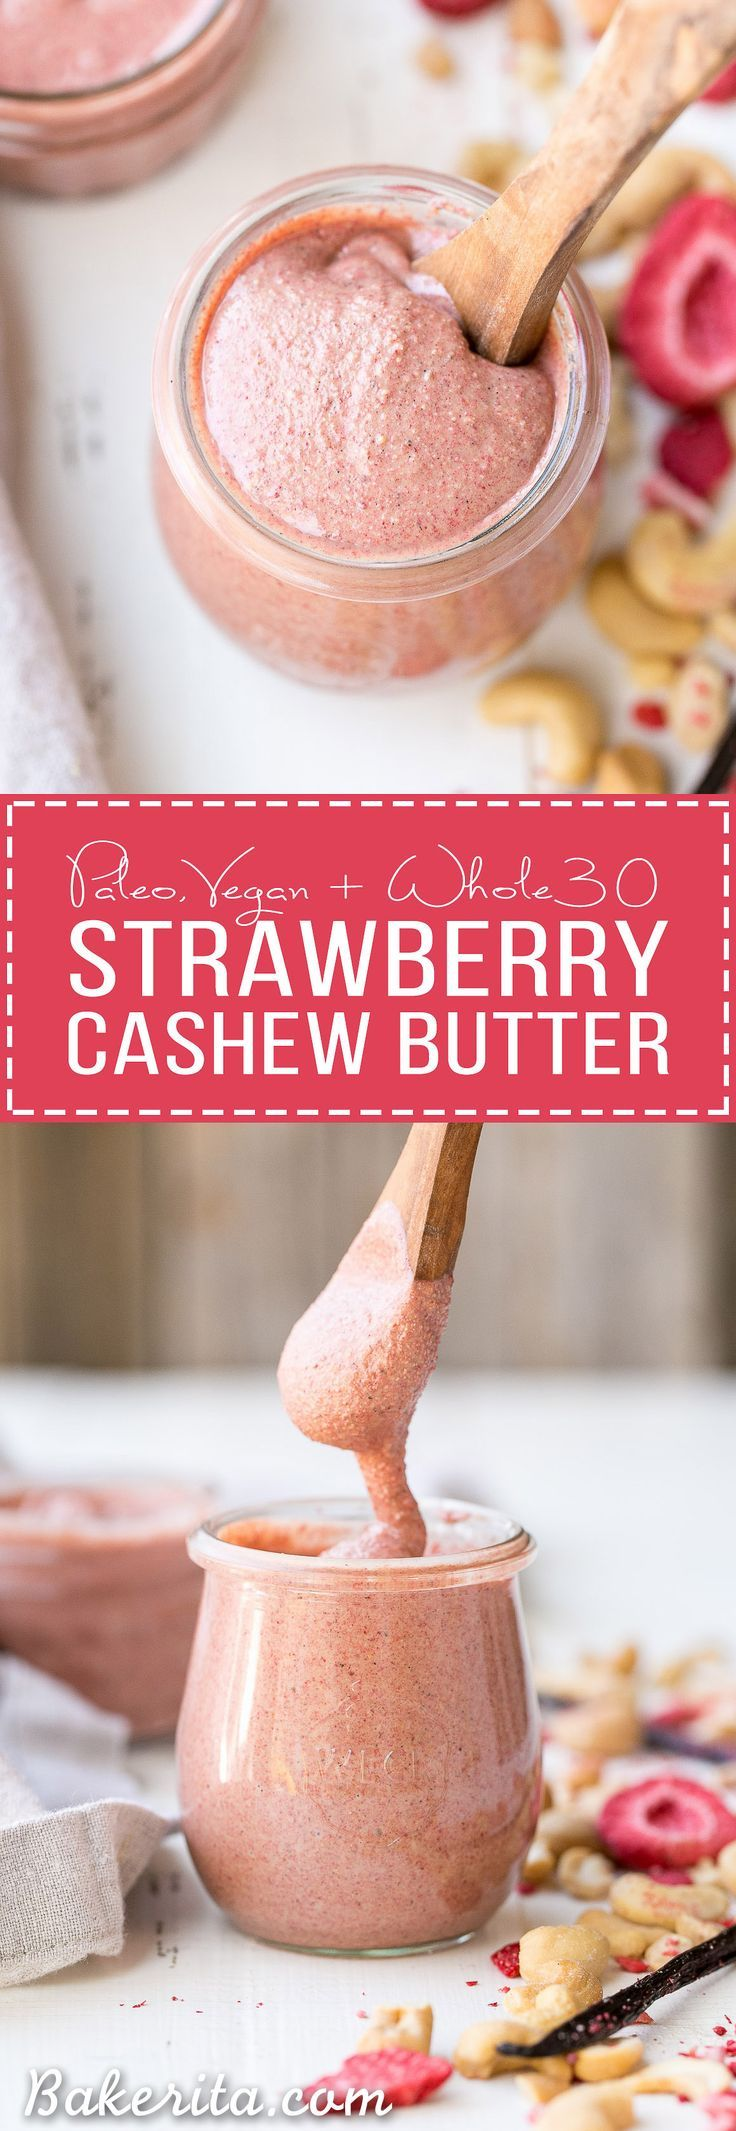 If you're a homemade nut butter fan, you must try this irresistible Strawberry Cashew Butter! Flavored with freeze dried strawberries and vanilla bean, this Paleo, vegan, sugar free + Whole30-friendly treat will be a new favorite.